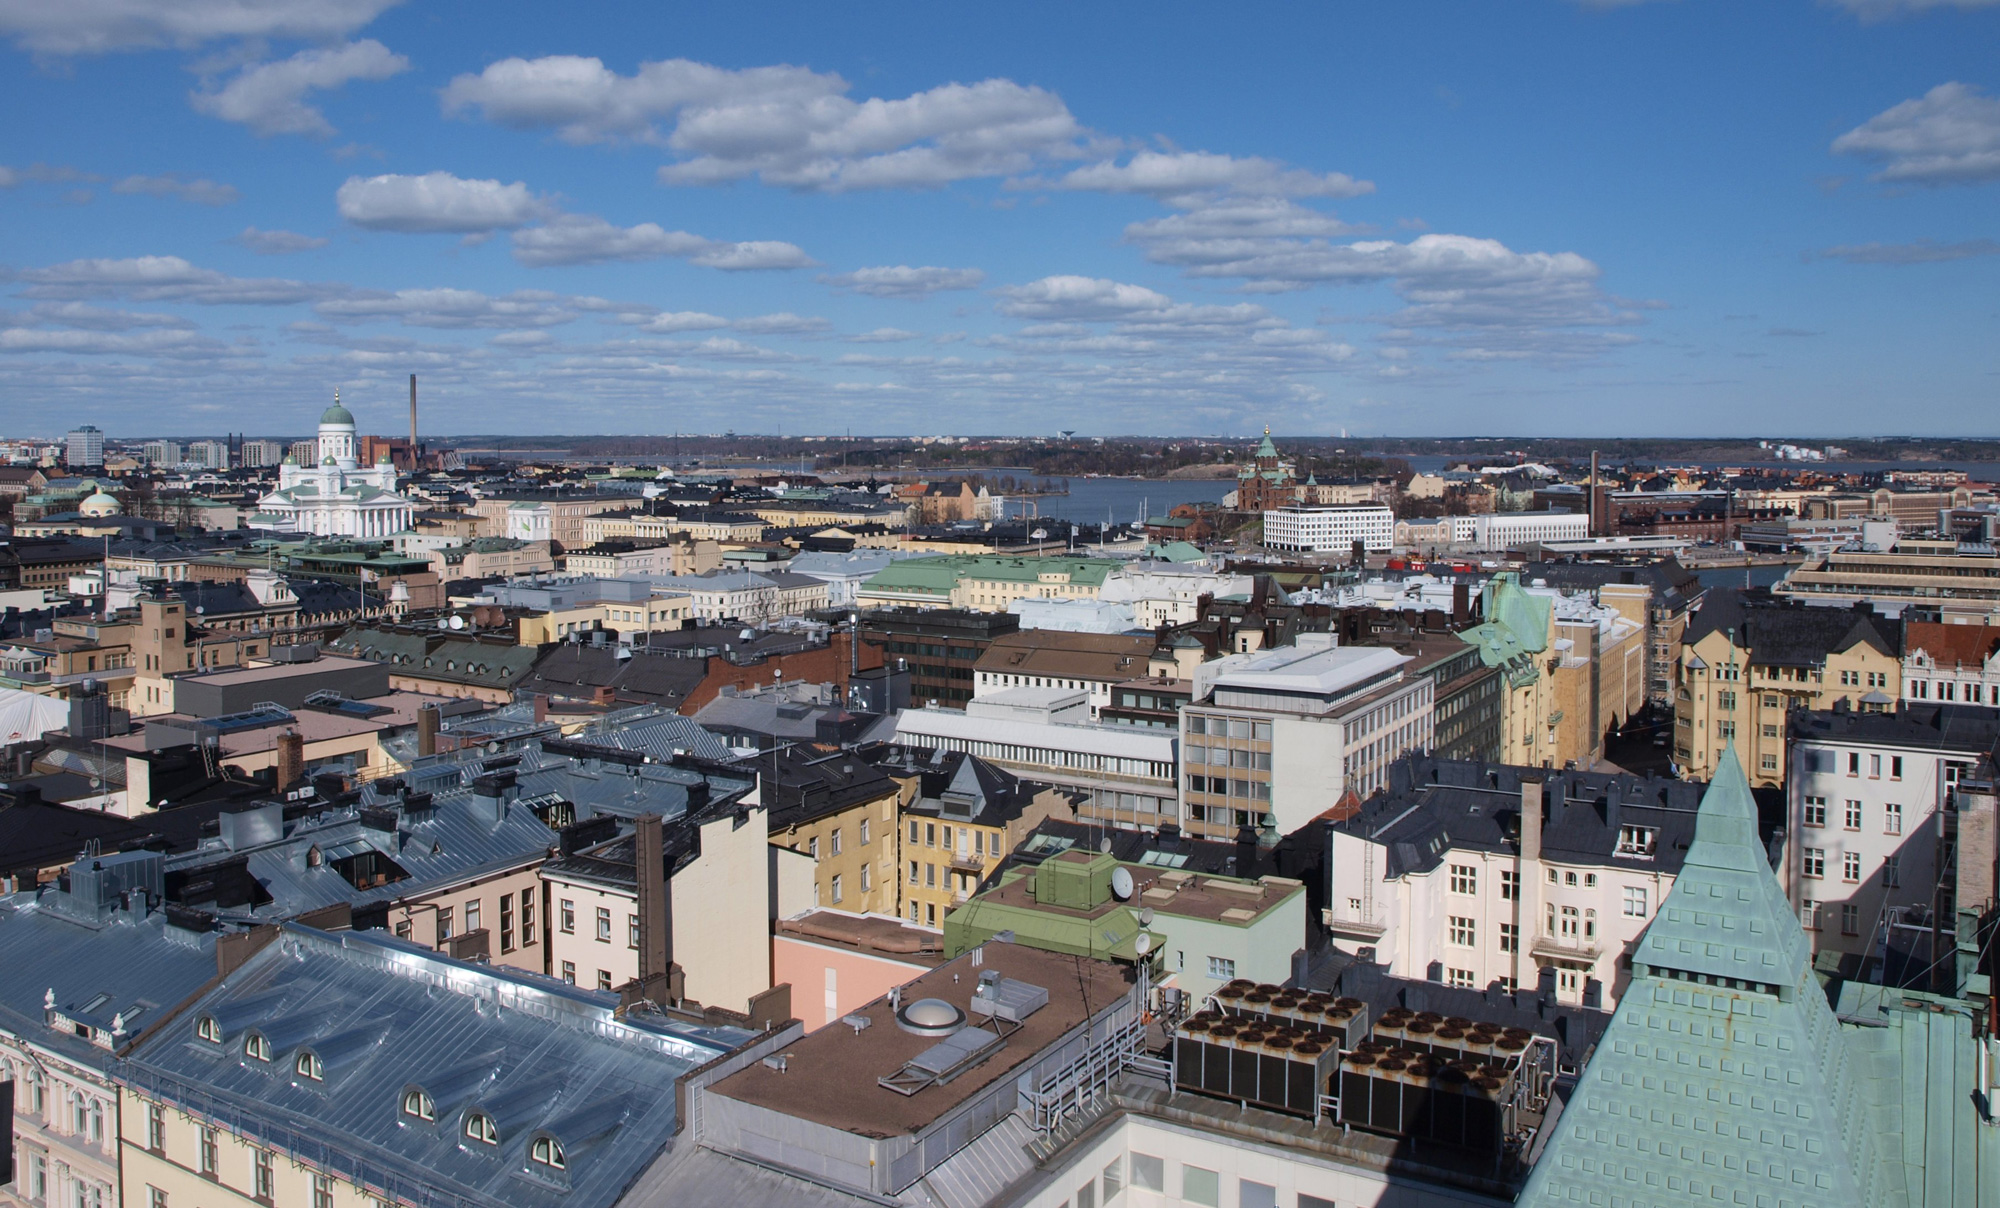 Of Helsinki's 1.2 million people, 900,000 have used public transportation in the past six months.